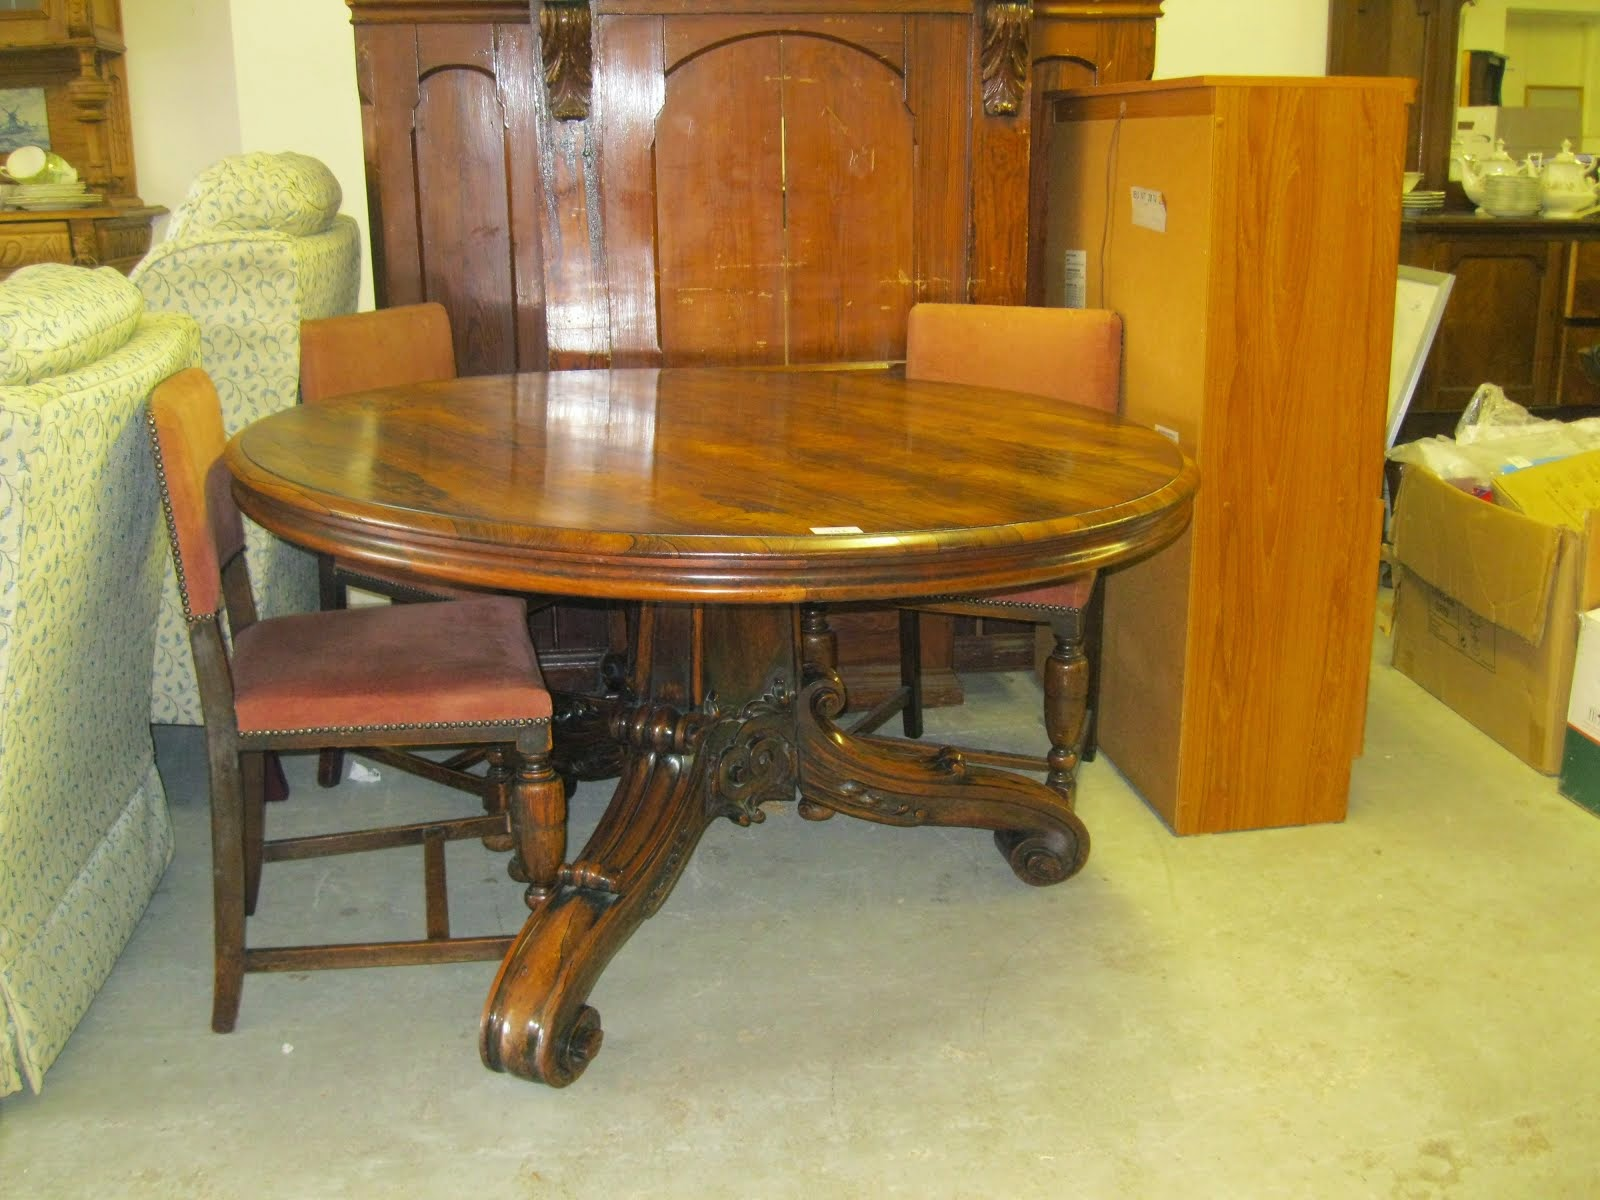 Auction of Tuesday, October 21st